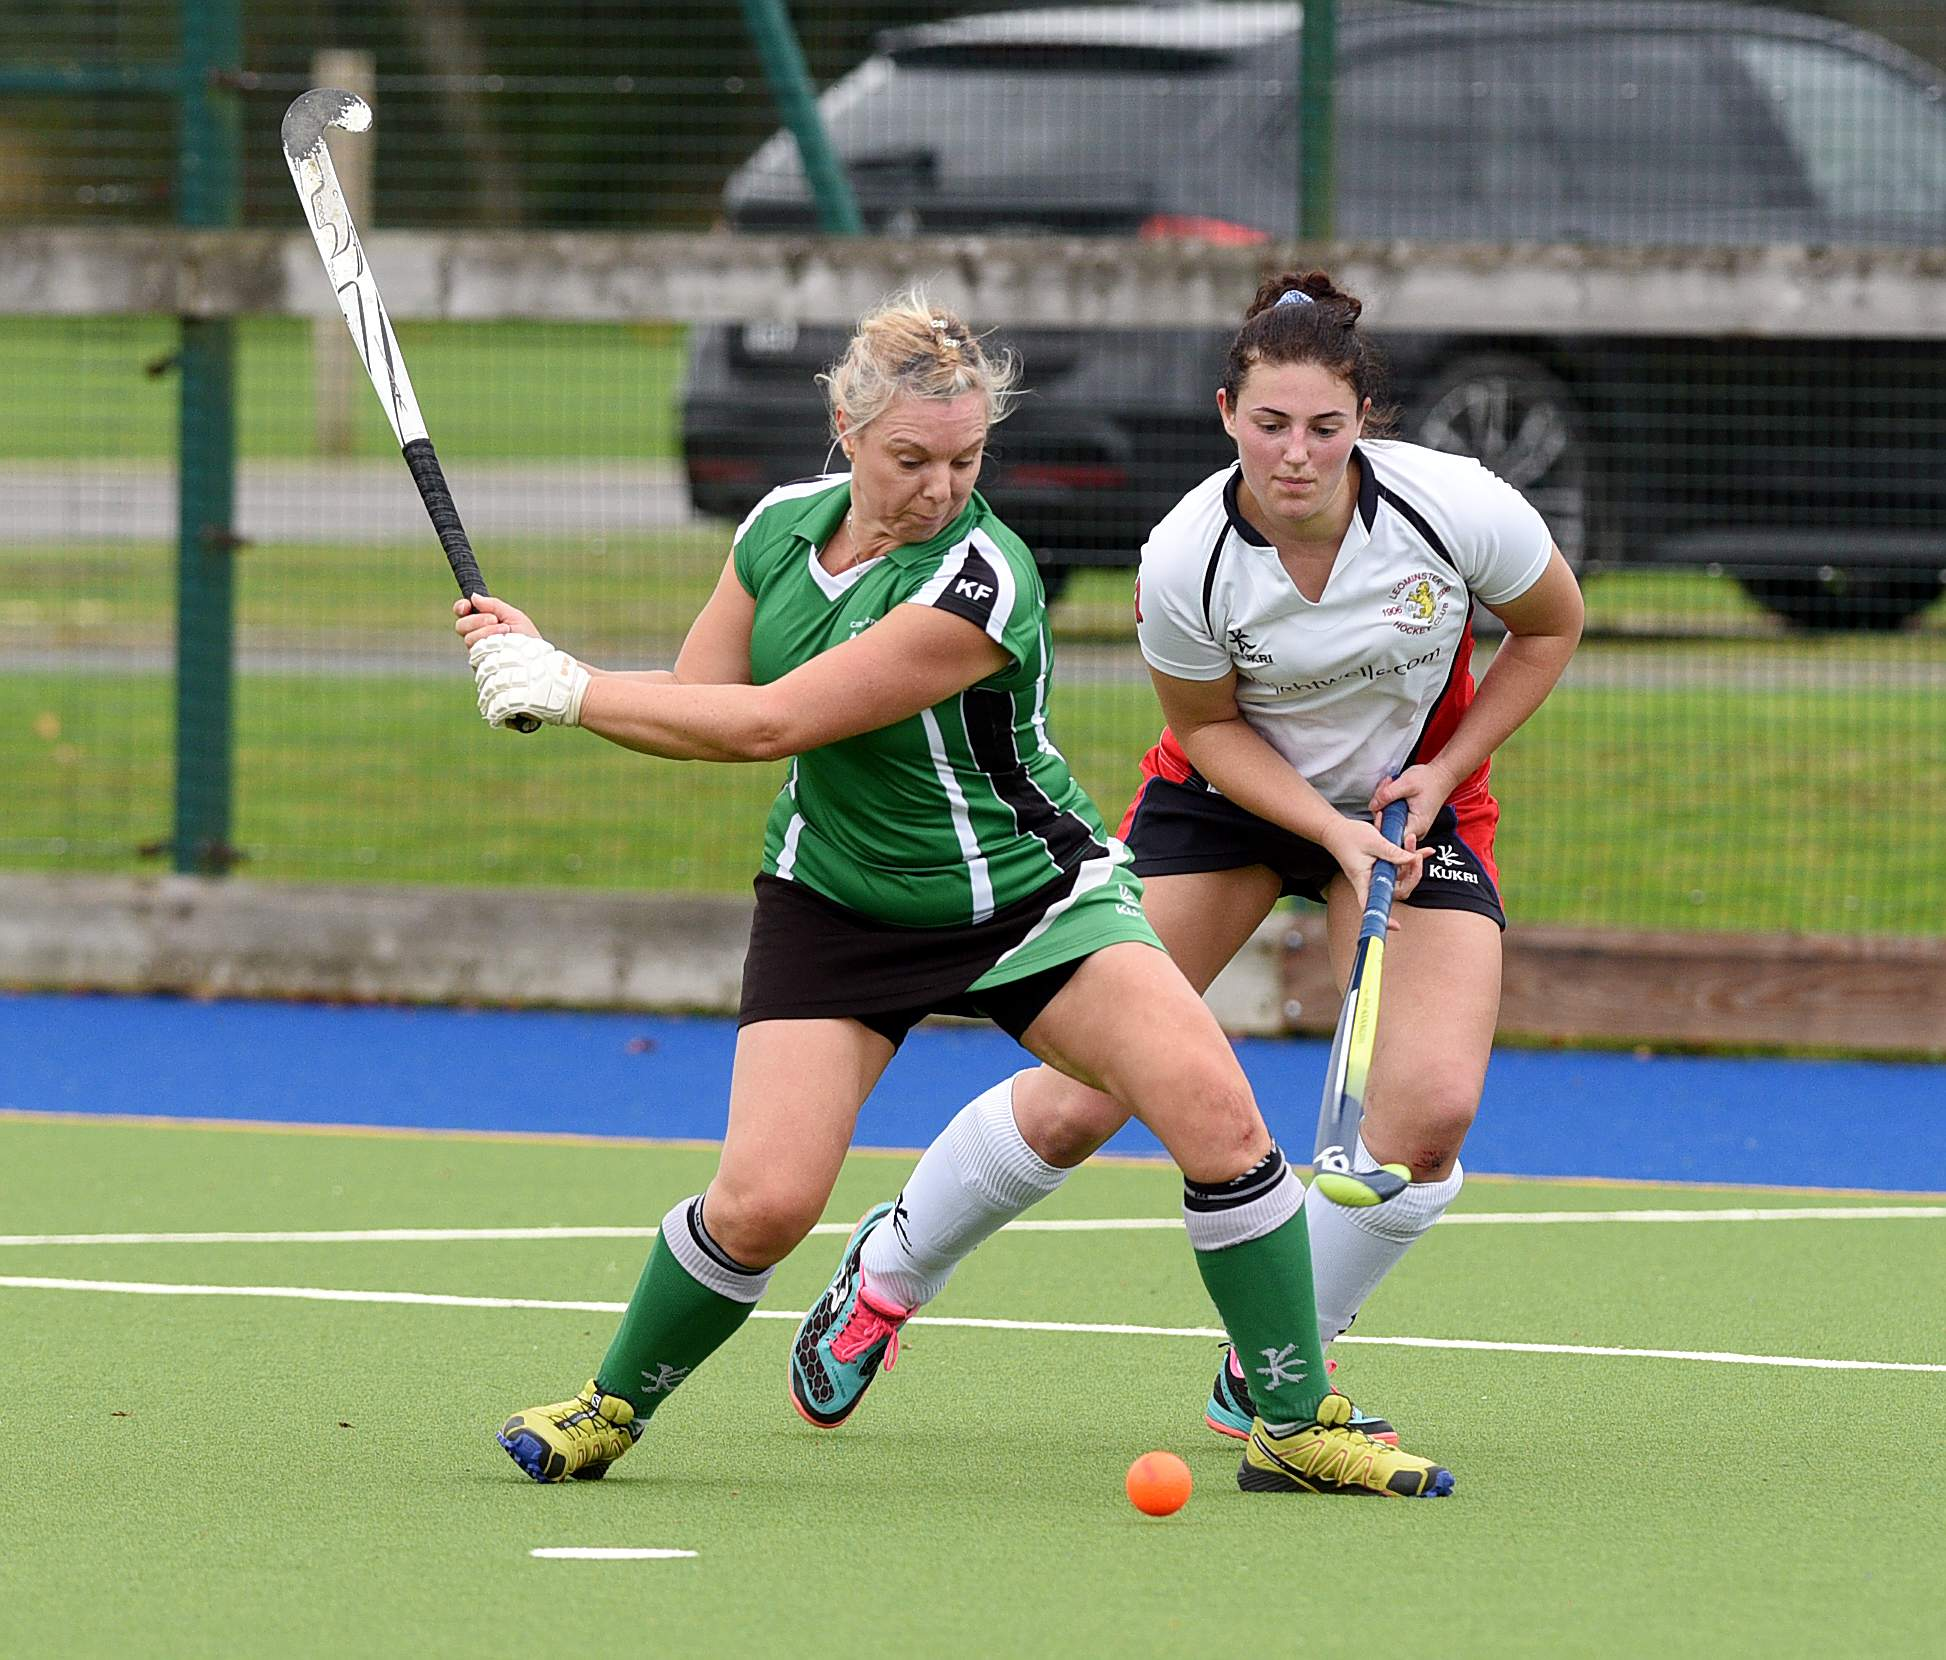 Kath Fry, left, has passed the 200-goal mark for Cirencester Hockey Club